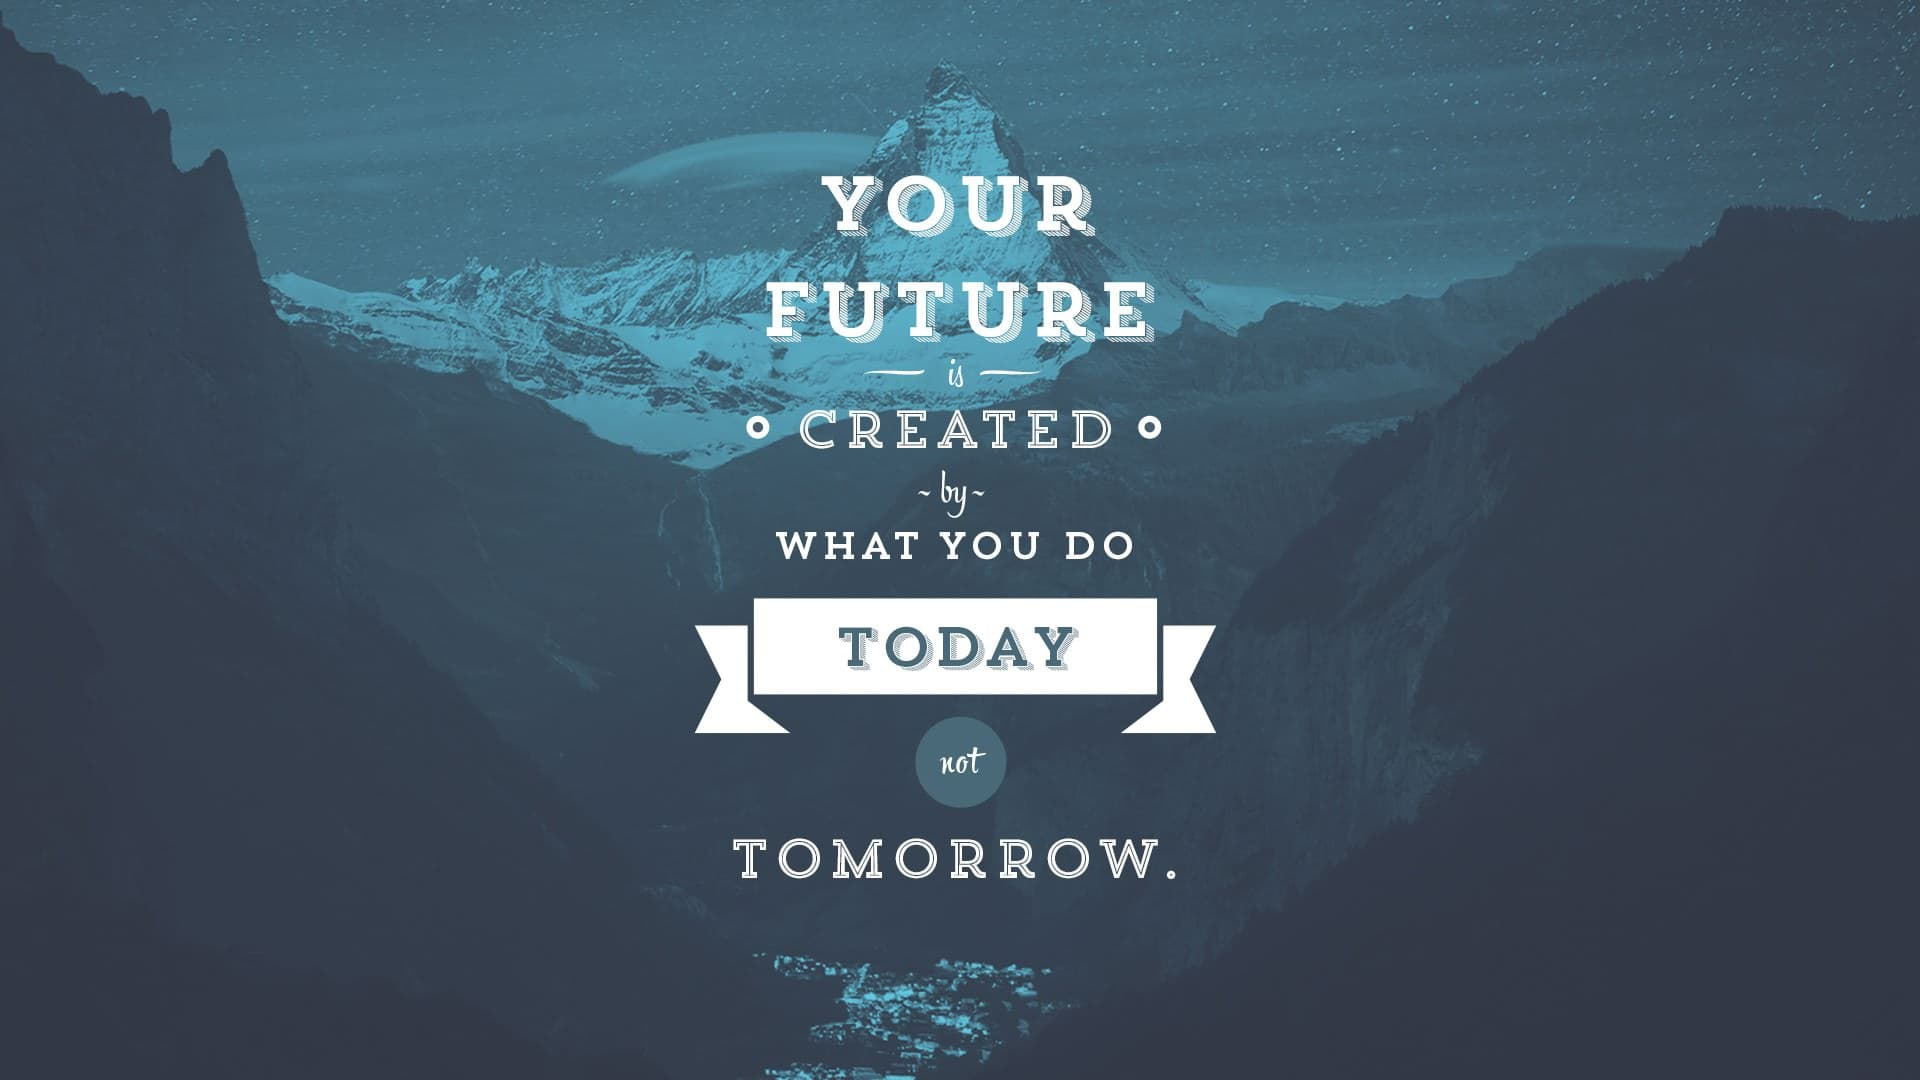 Your future is created by what you do today no tomorrow.